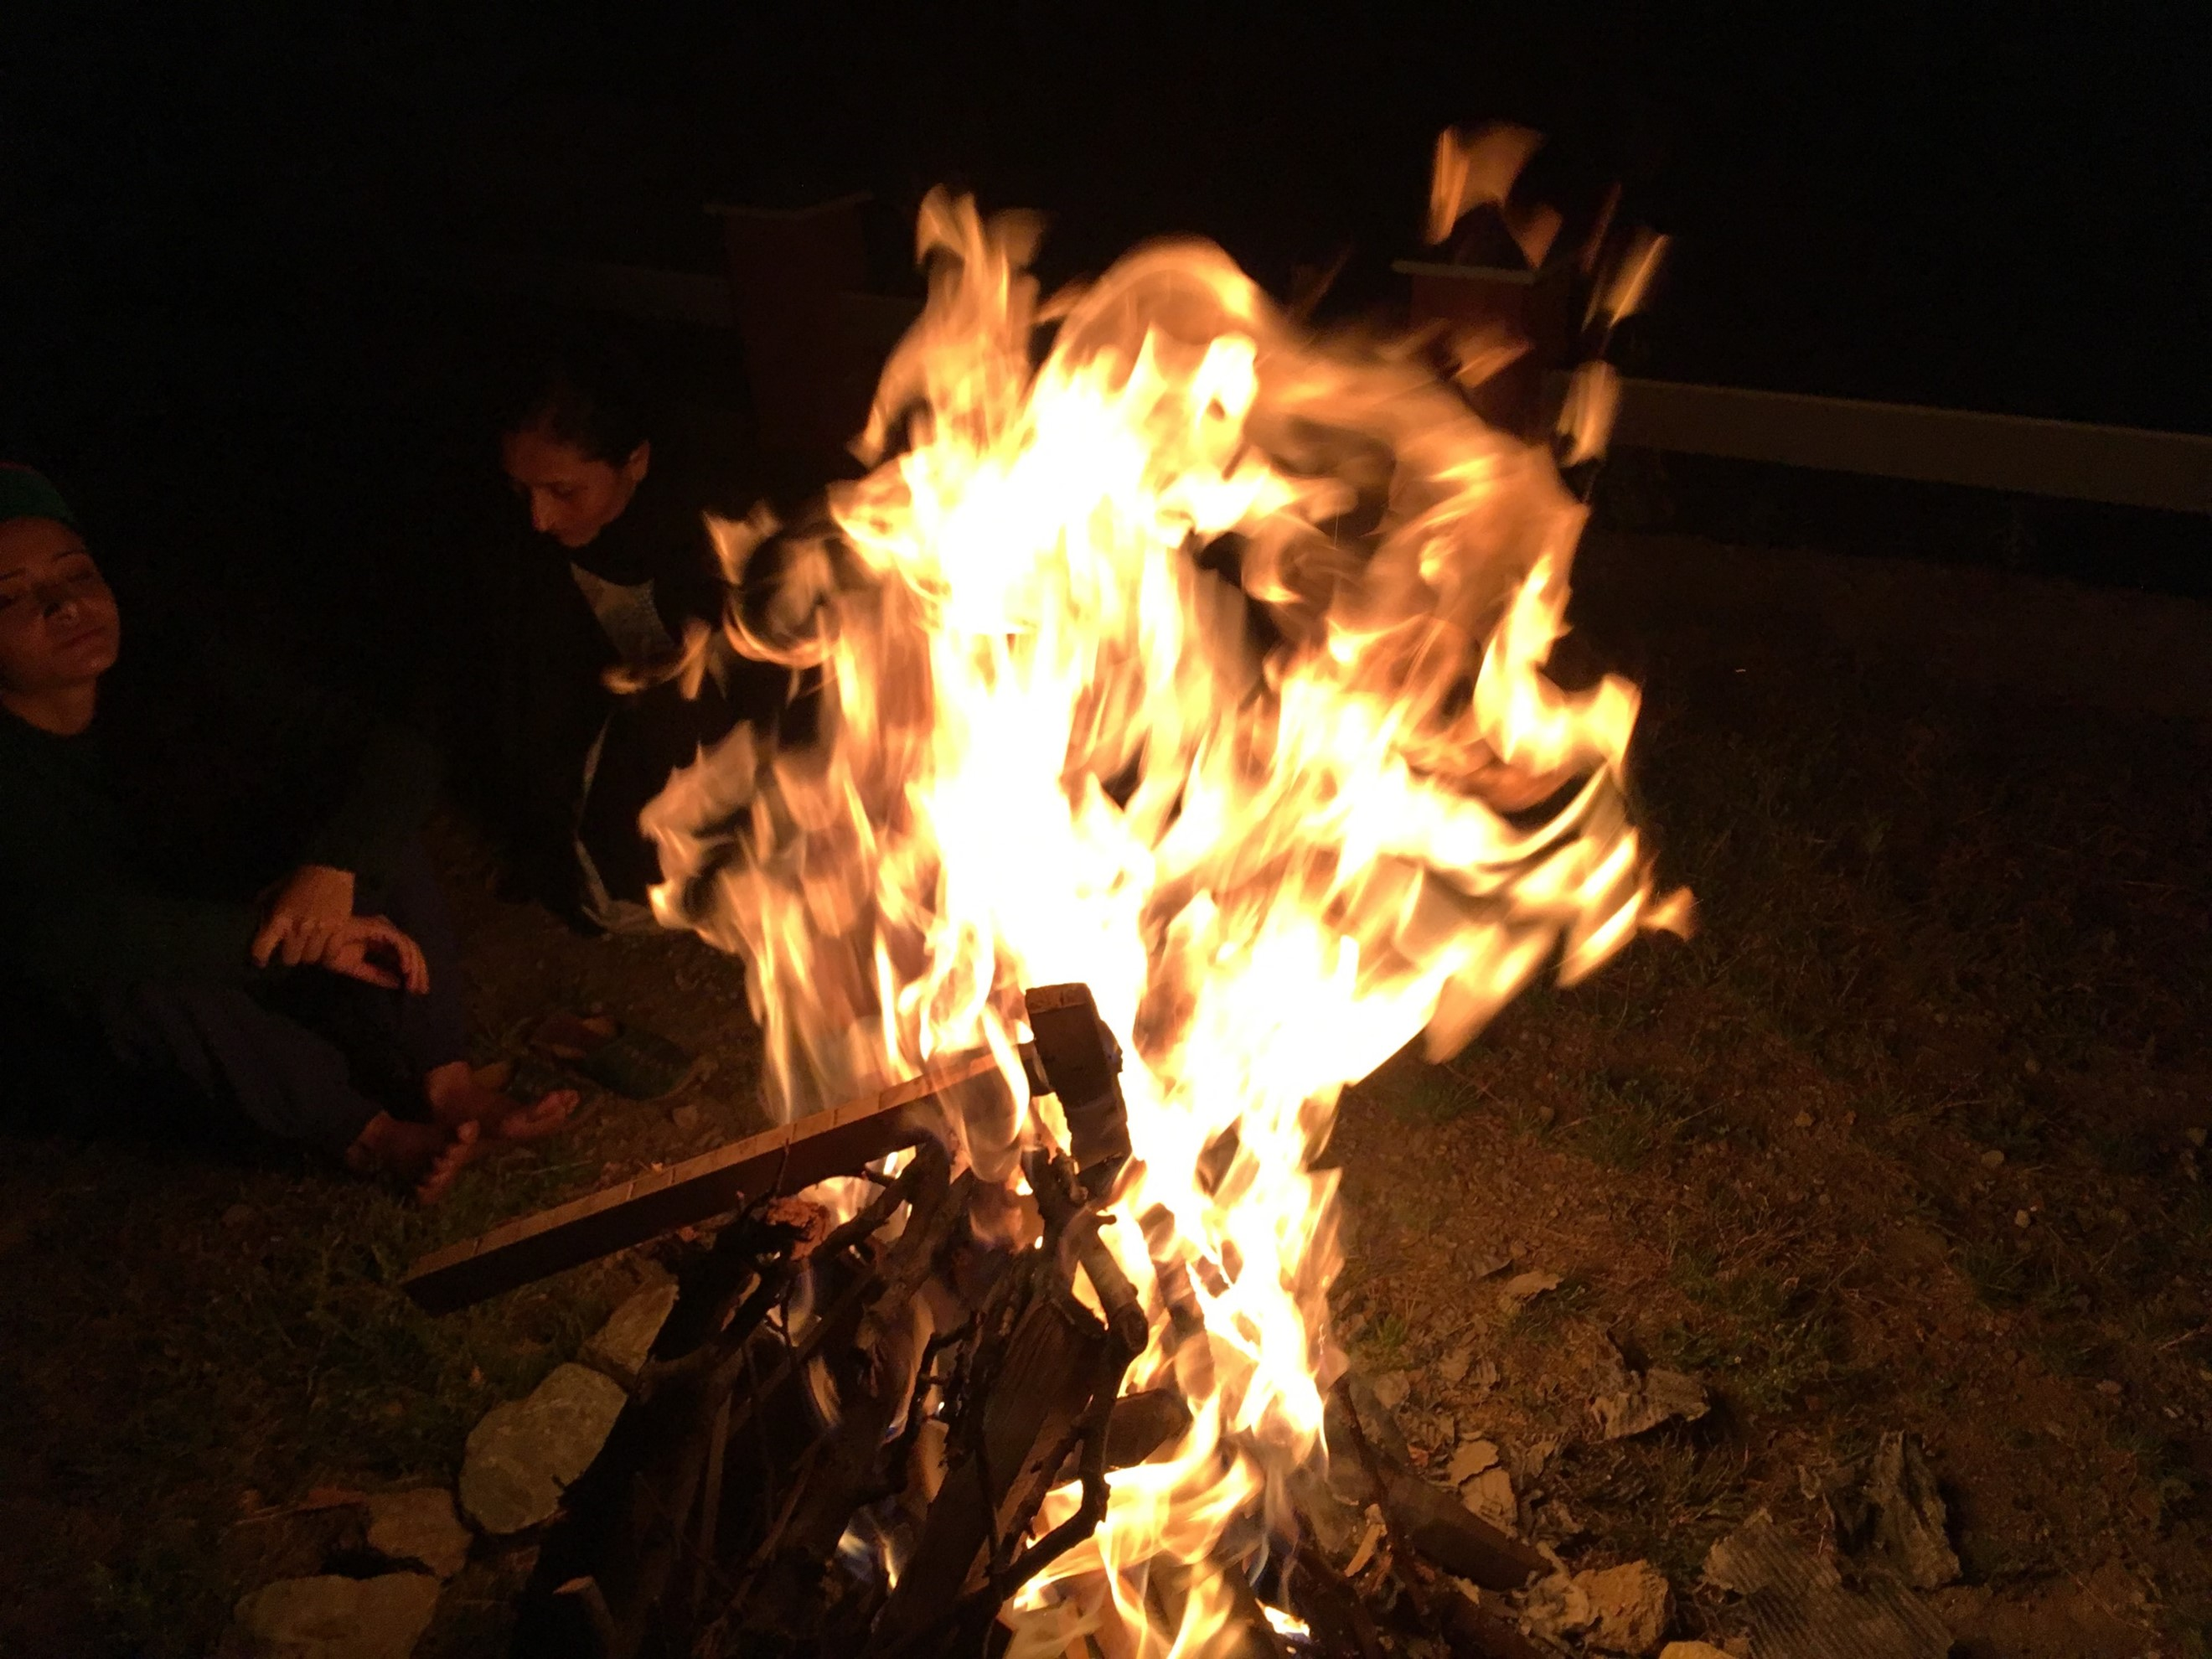 The camp fire, notice the height of the flames